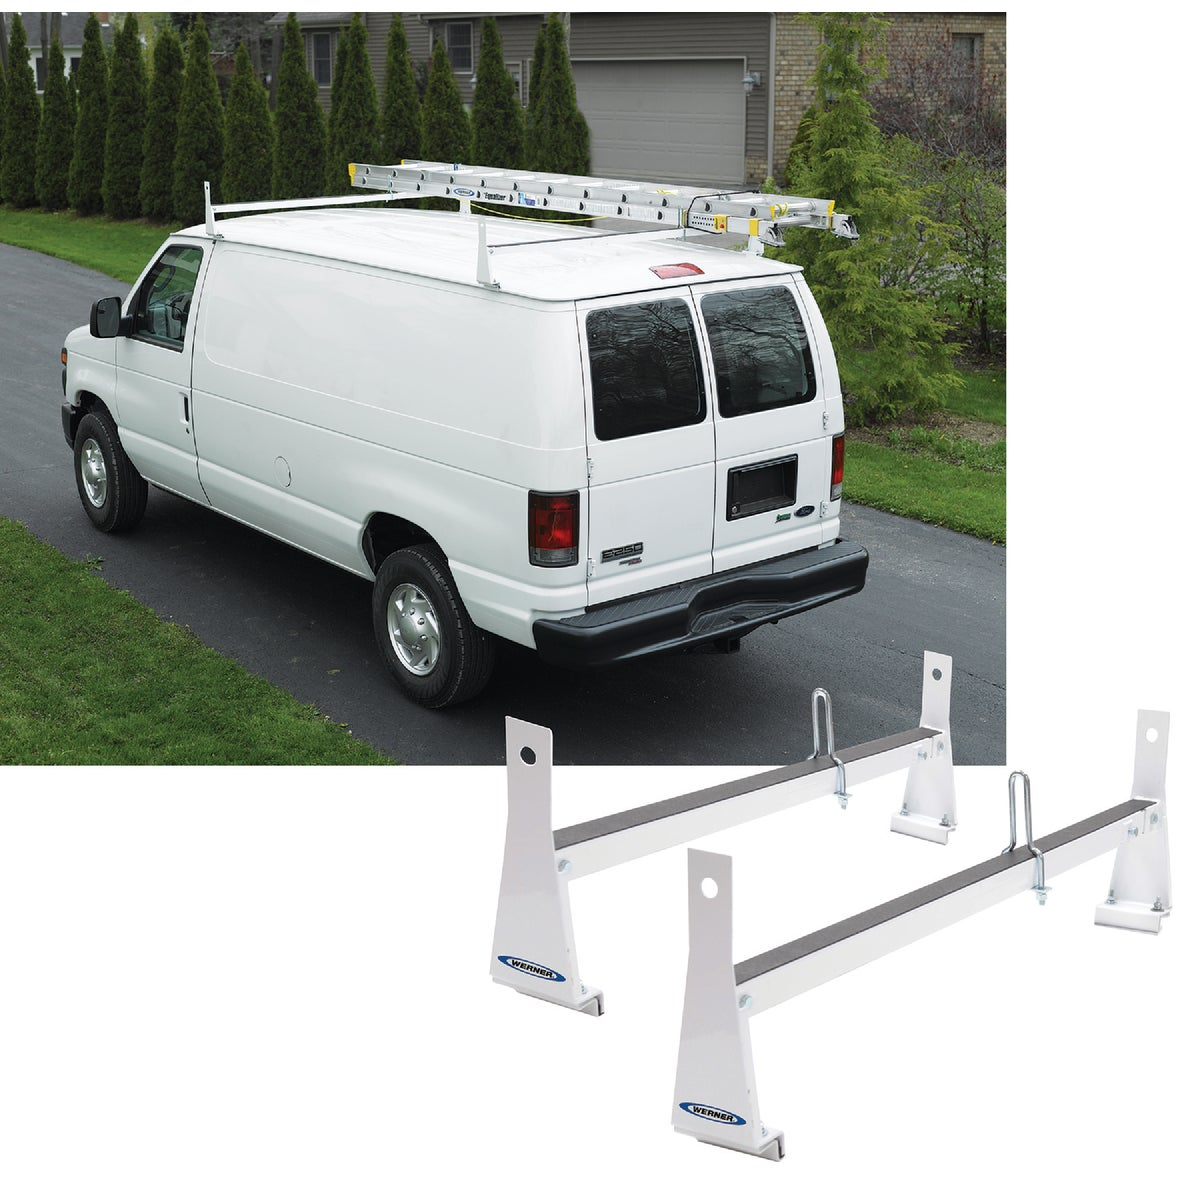 600LB WHITE VAN RACK